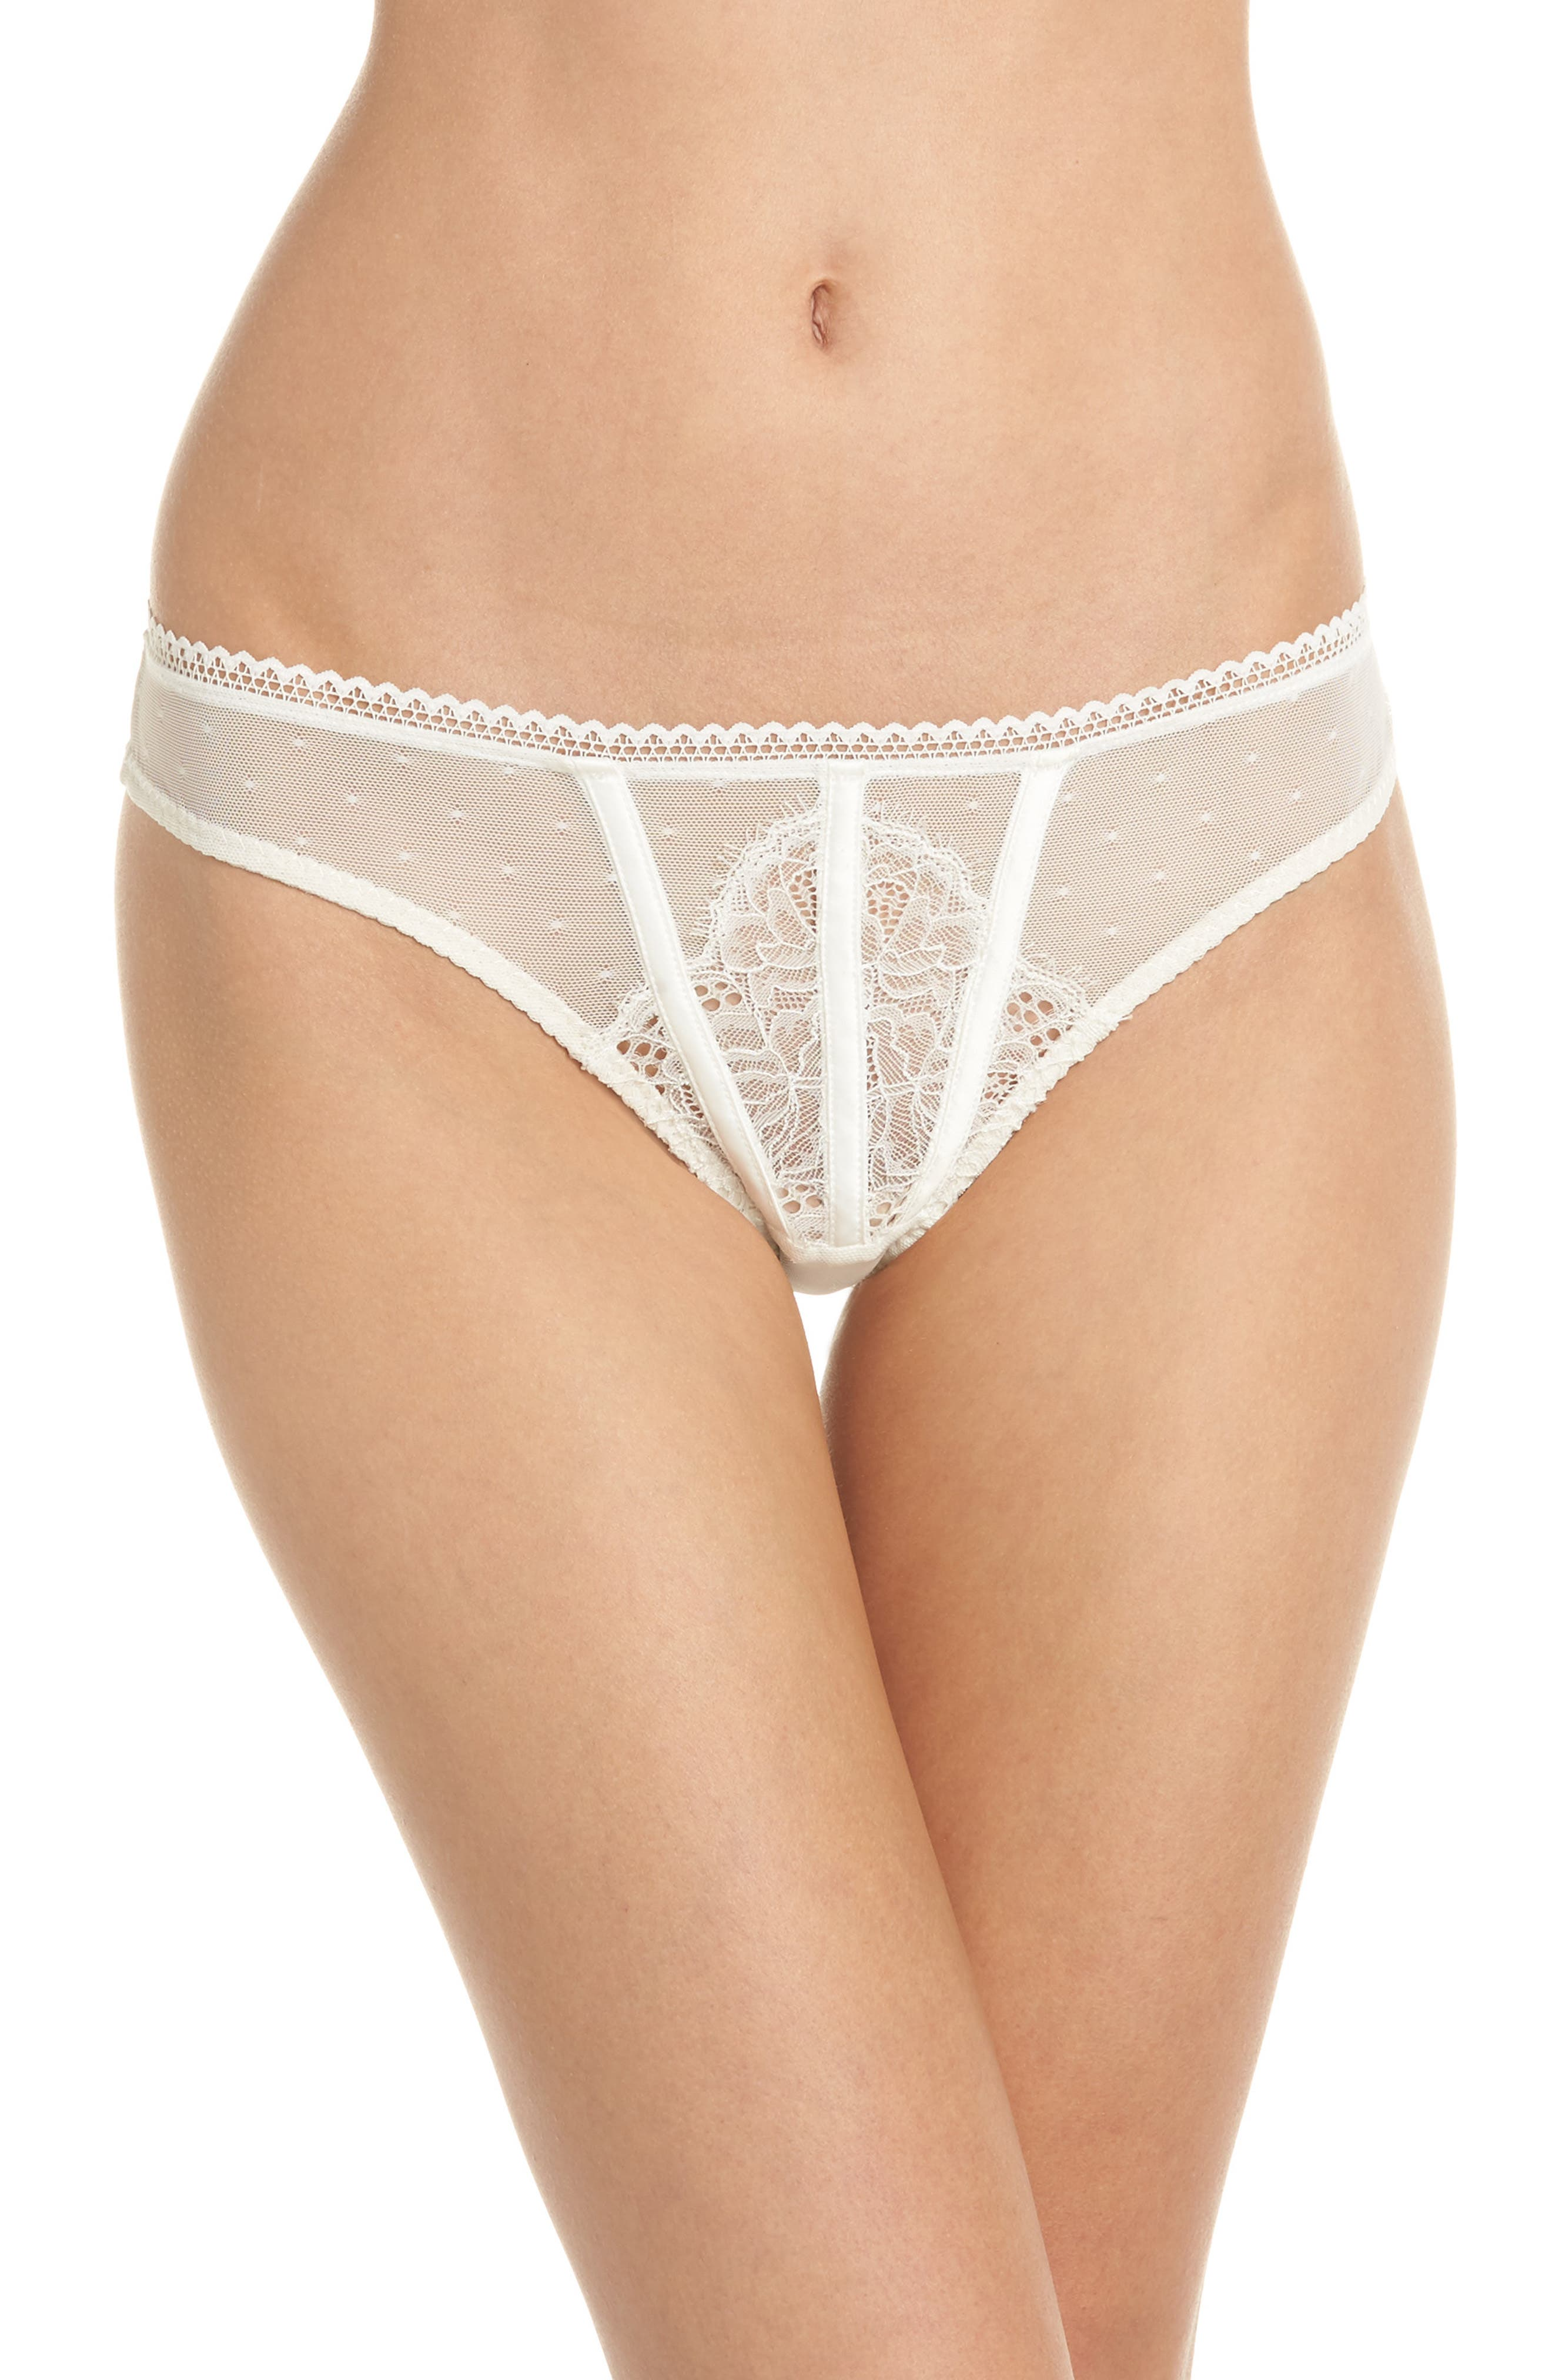 Thistle & Spire All Wrapped Up Thong,                             Main thumbnail 3, color,